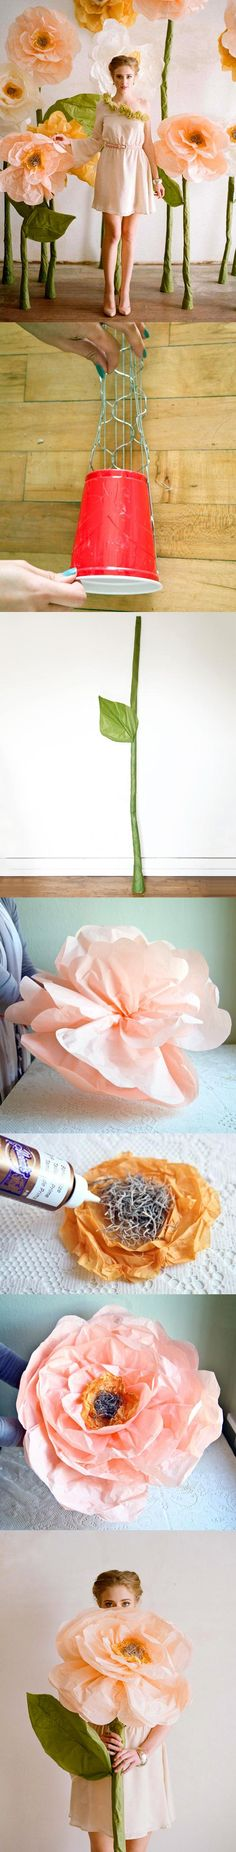 DIY: GIANT PAPER ROSE FLOWER (bridal shower)